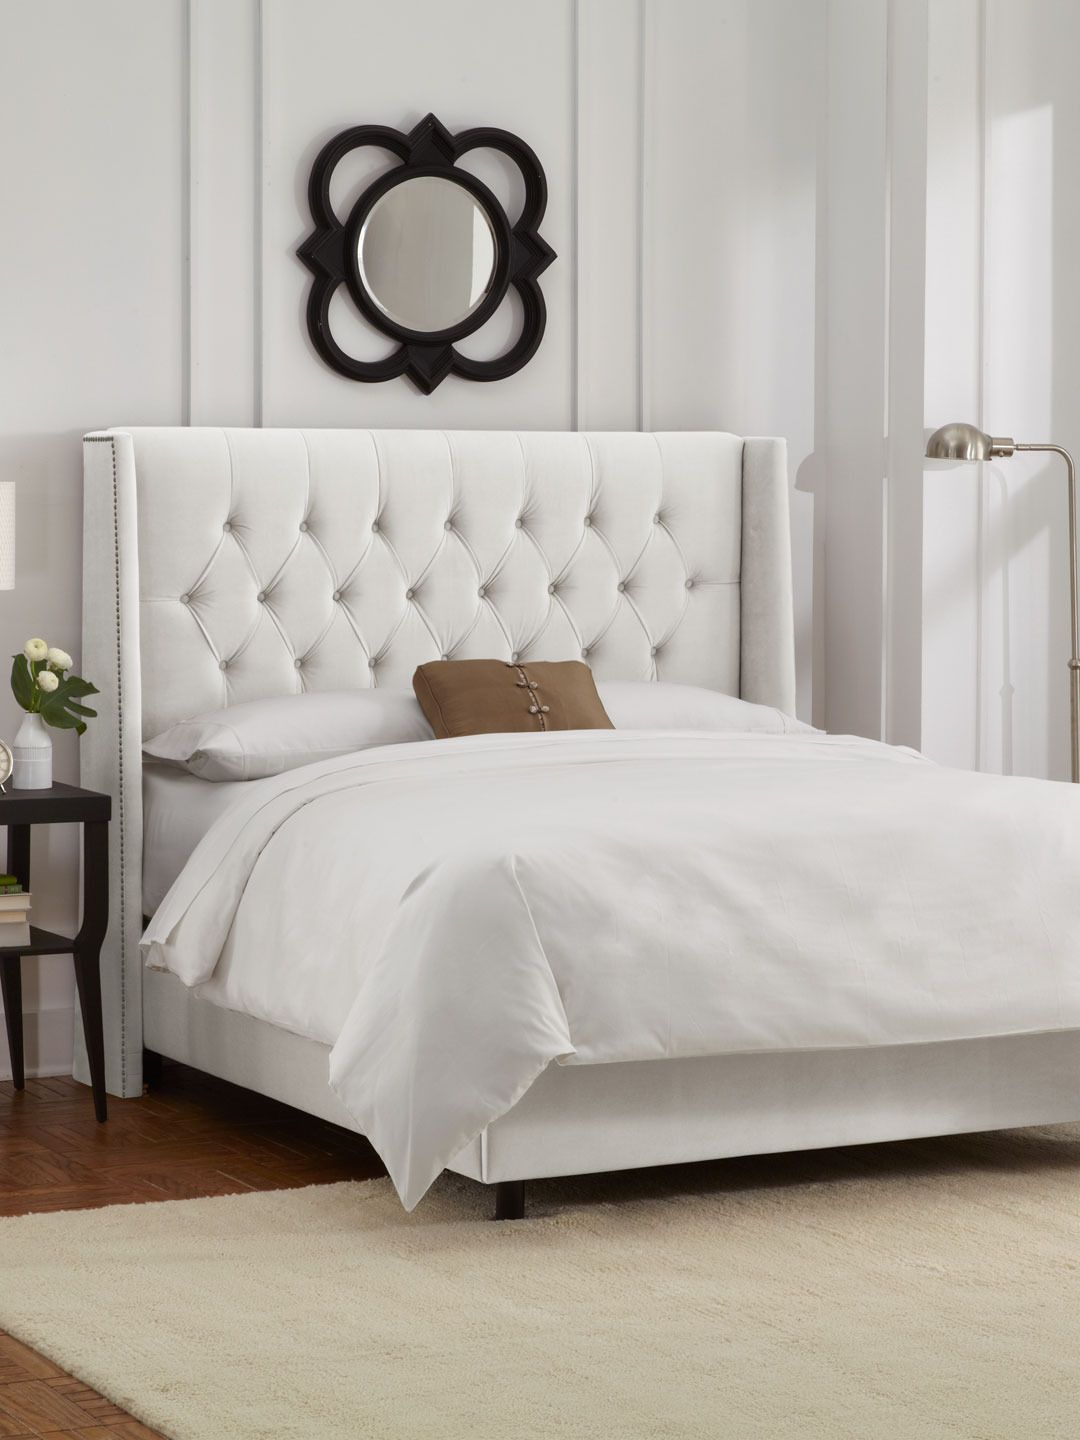 Tufted Velvet Wingback Bed with Nailhead Trim | Beds | Pinterest ...